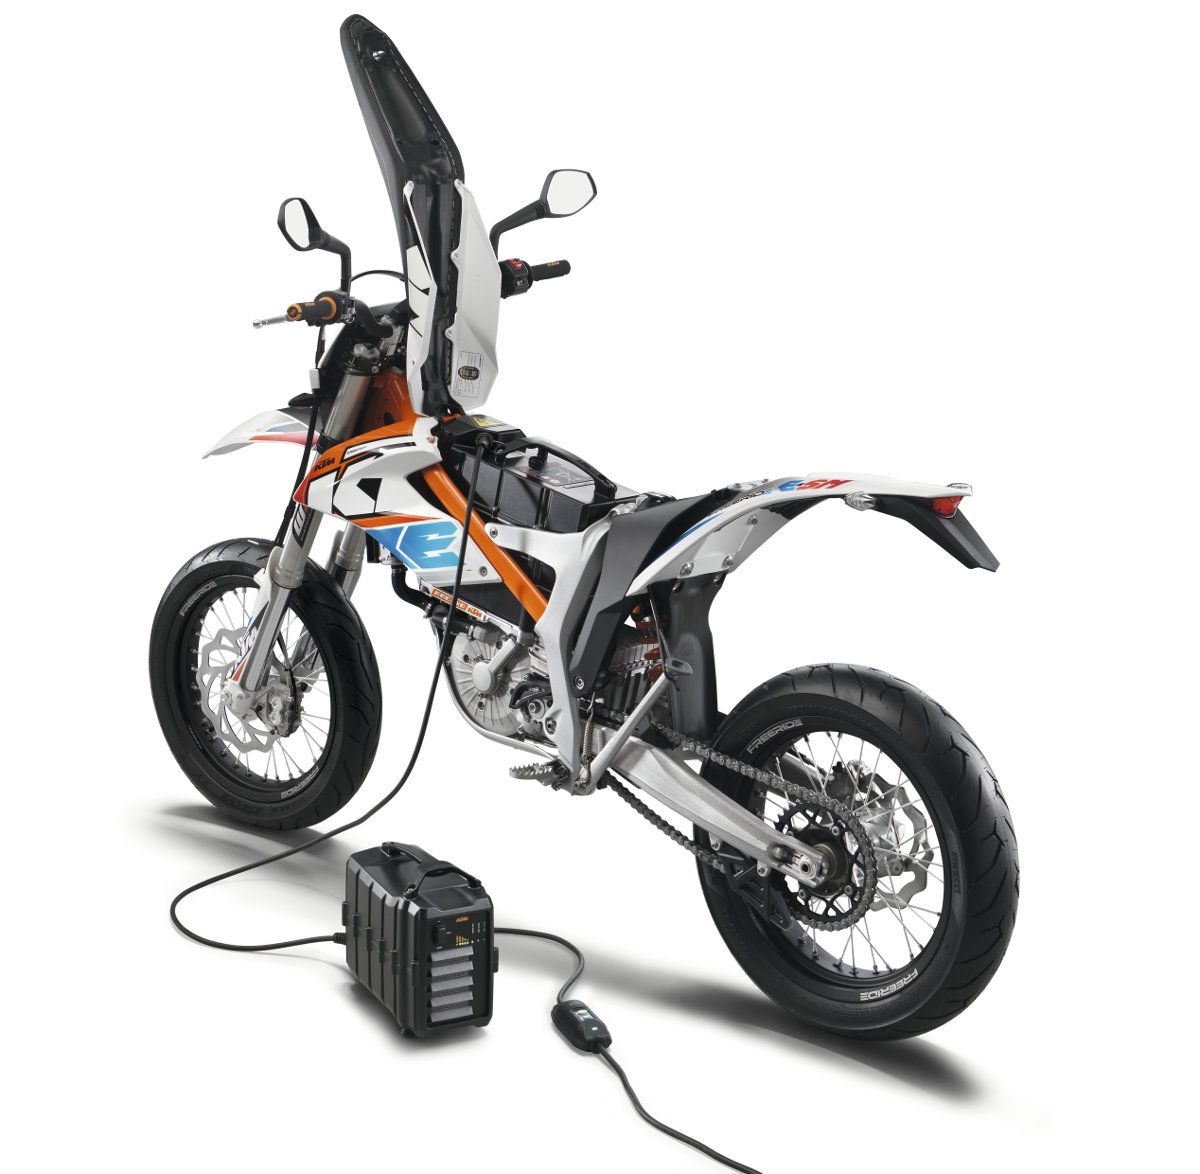 Ktm Freeride E Sm >> Ktm Freeride E Sm Gets Finance Options Ktm Motorcycles Motorcycle